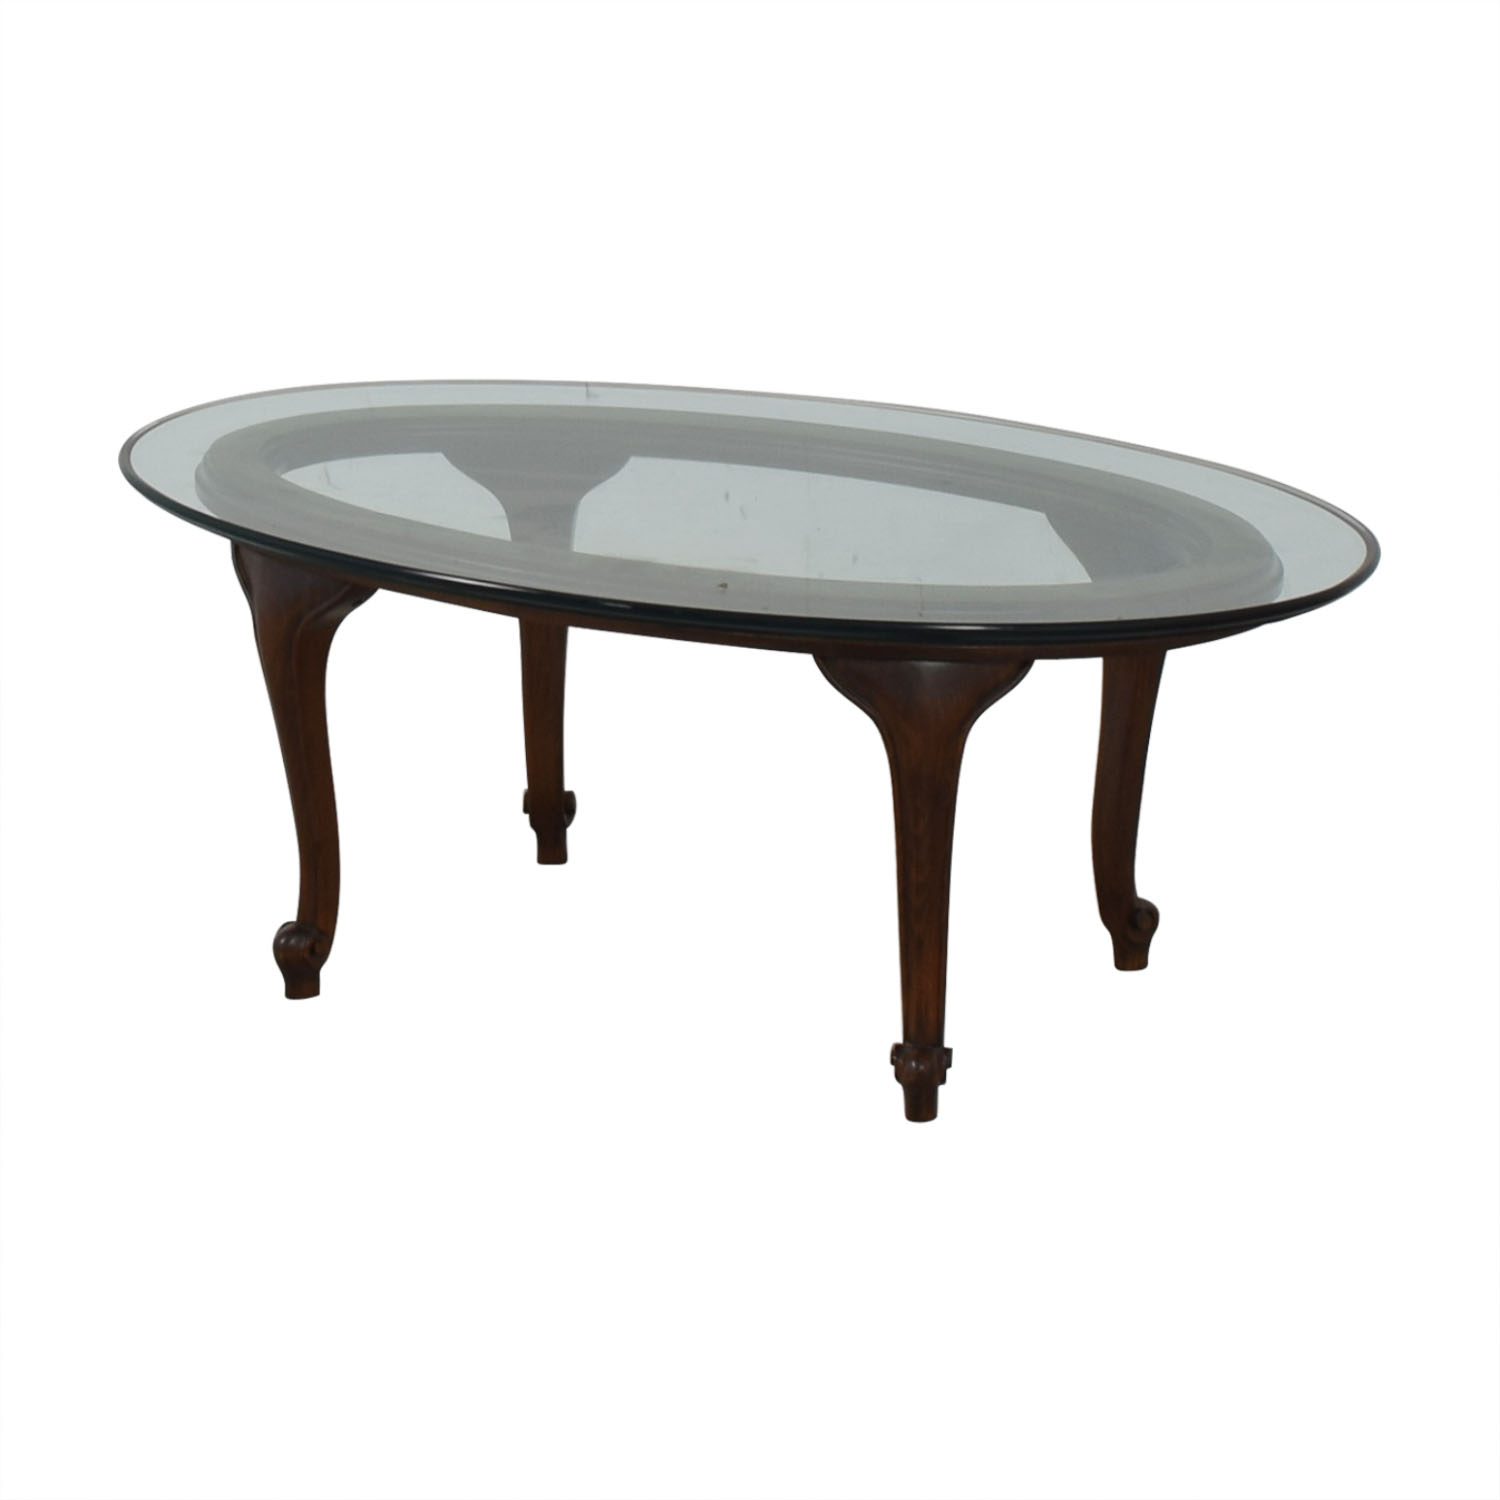 Macy's Macy's Oval Coffee Table discount